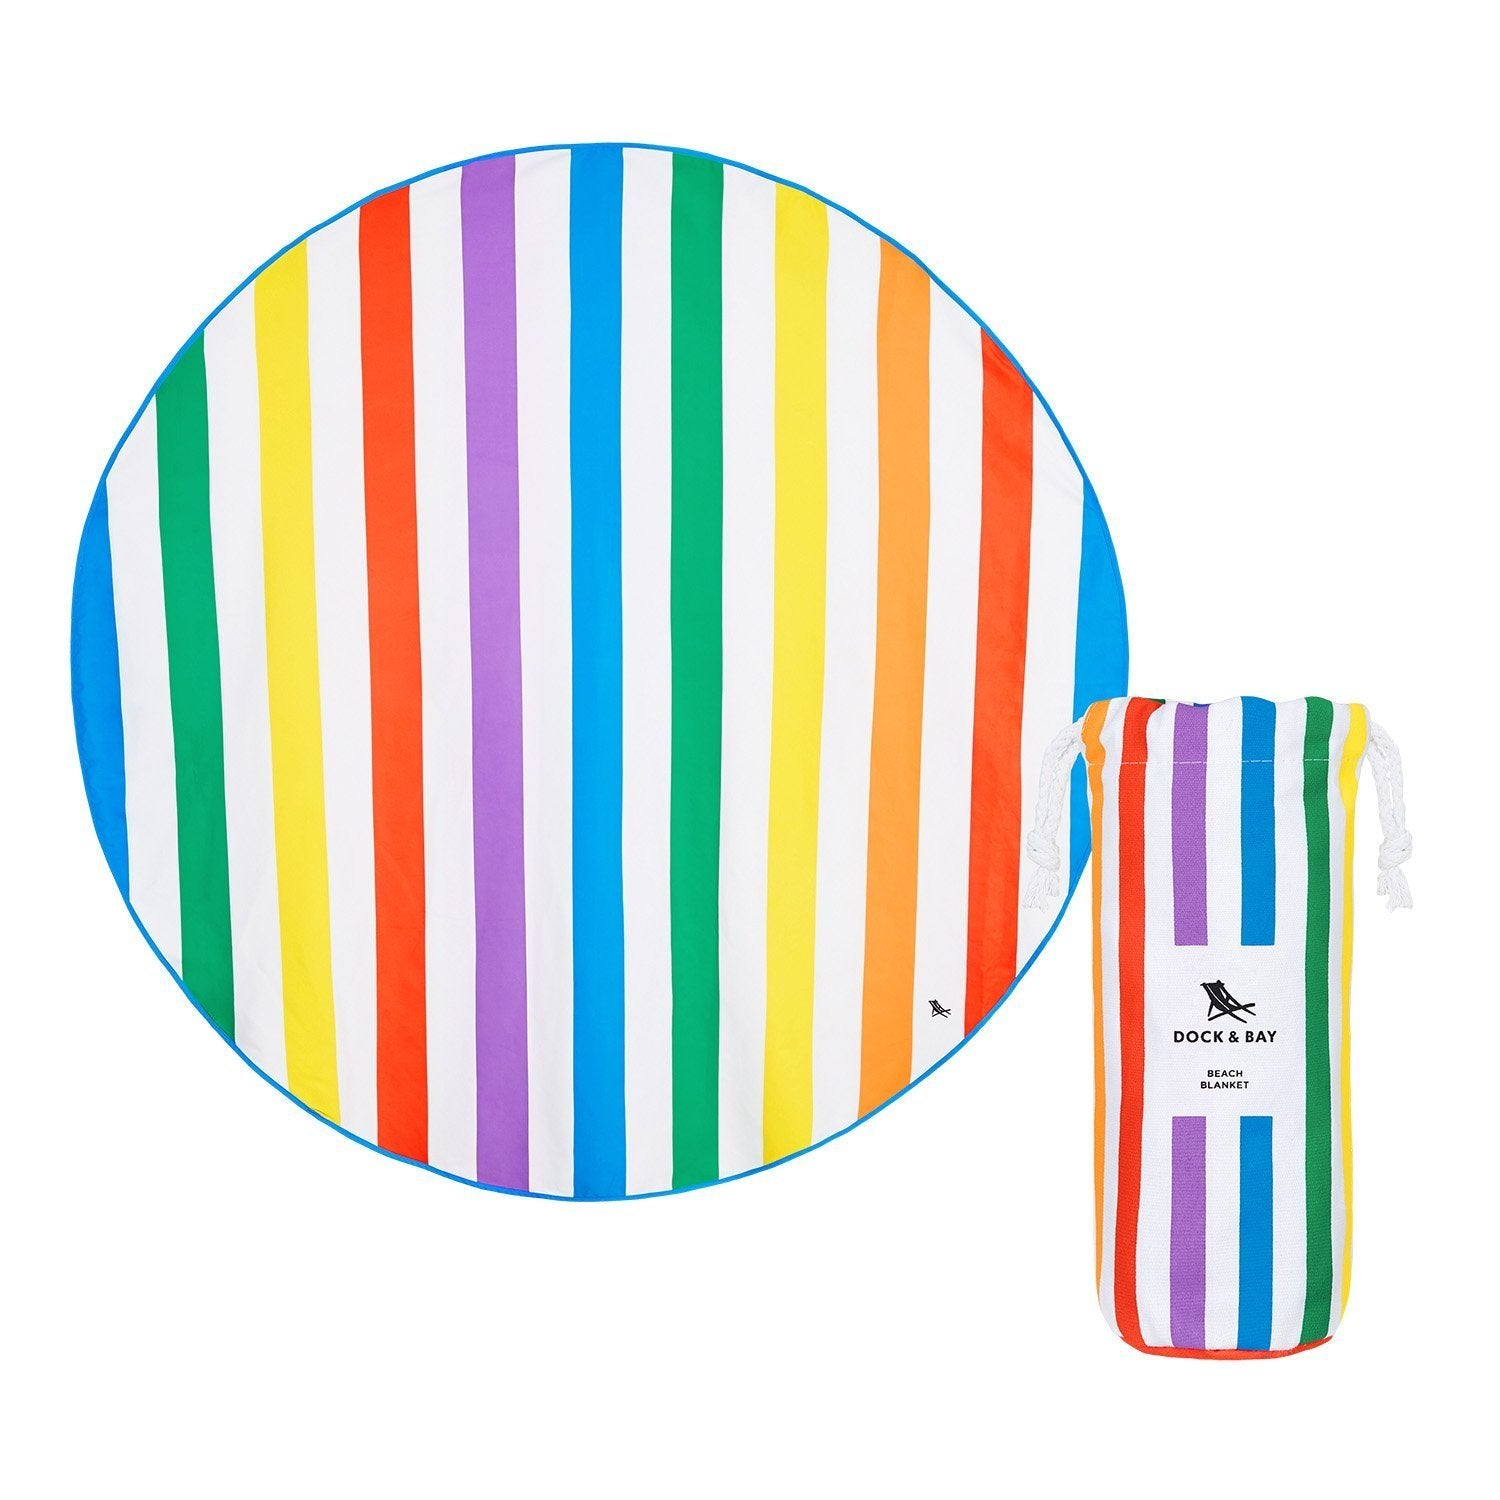 Dock & Bay: Beach Towel Round Collection - Rainbow Skies